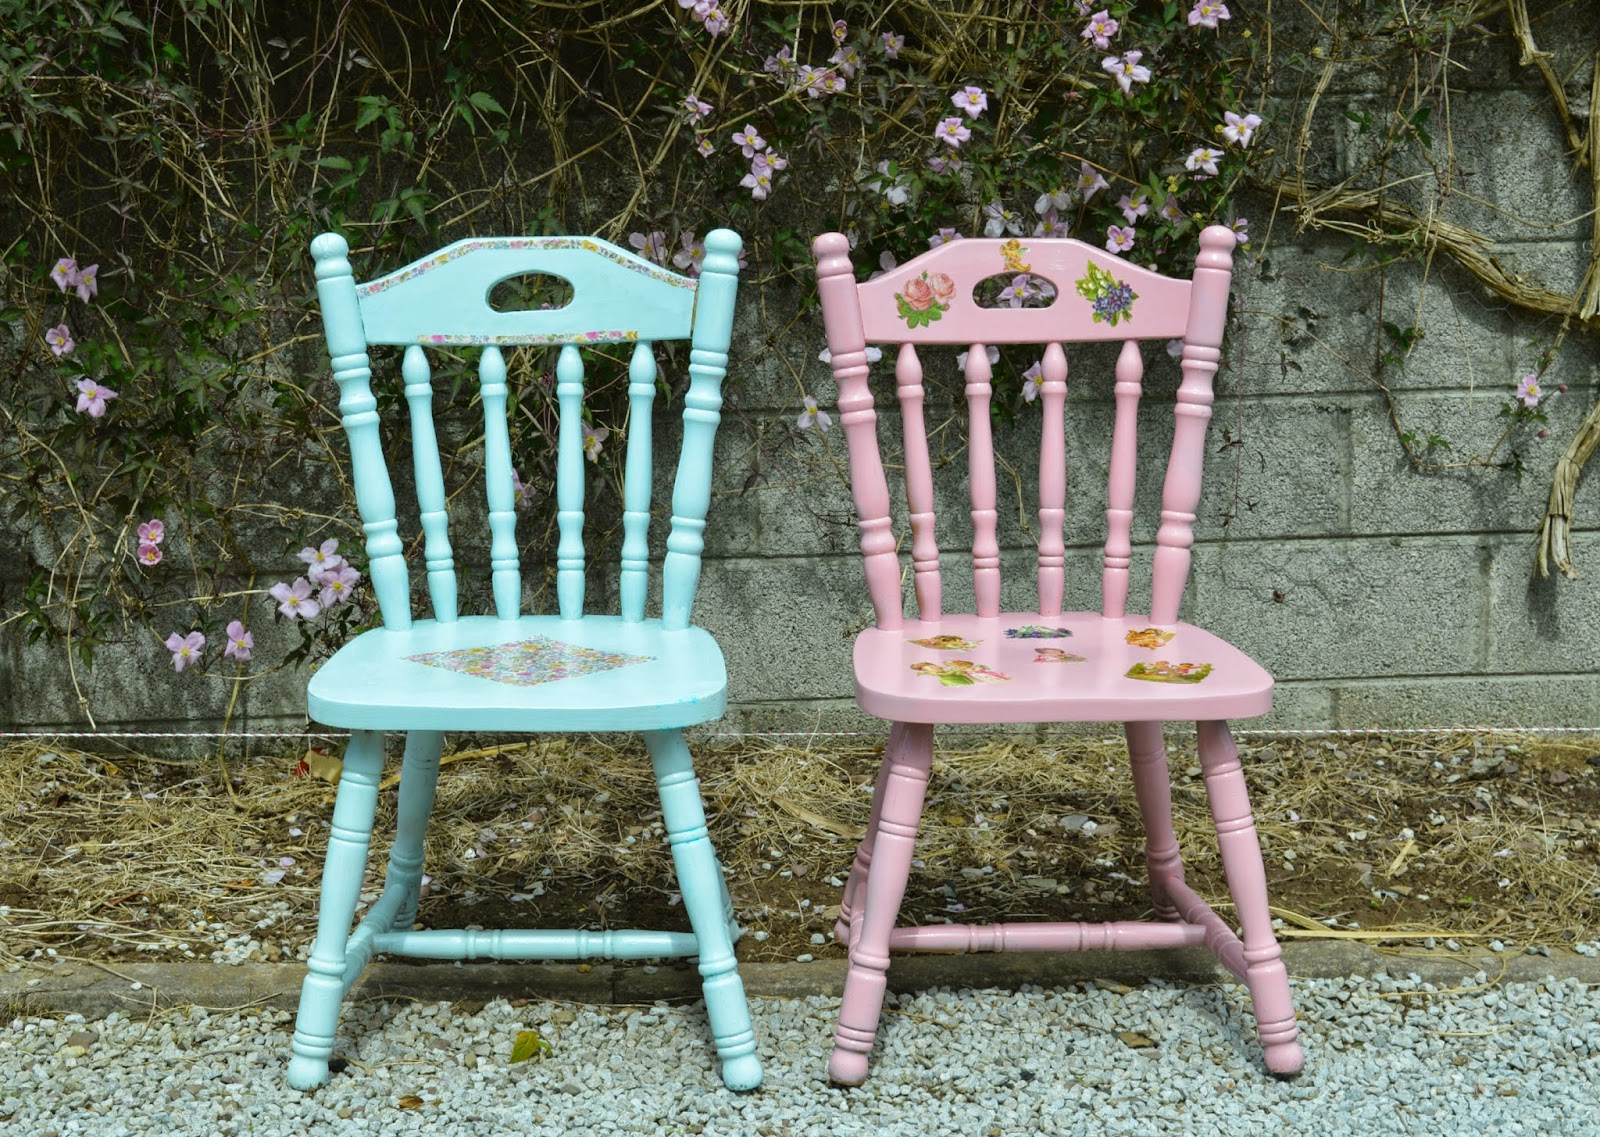 Diy upcycled chairs shabby chic inspired fawns fables - Upcycling ideas for furniture ...